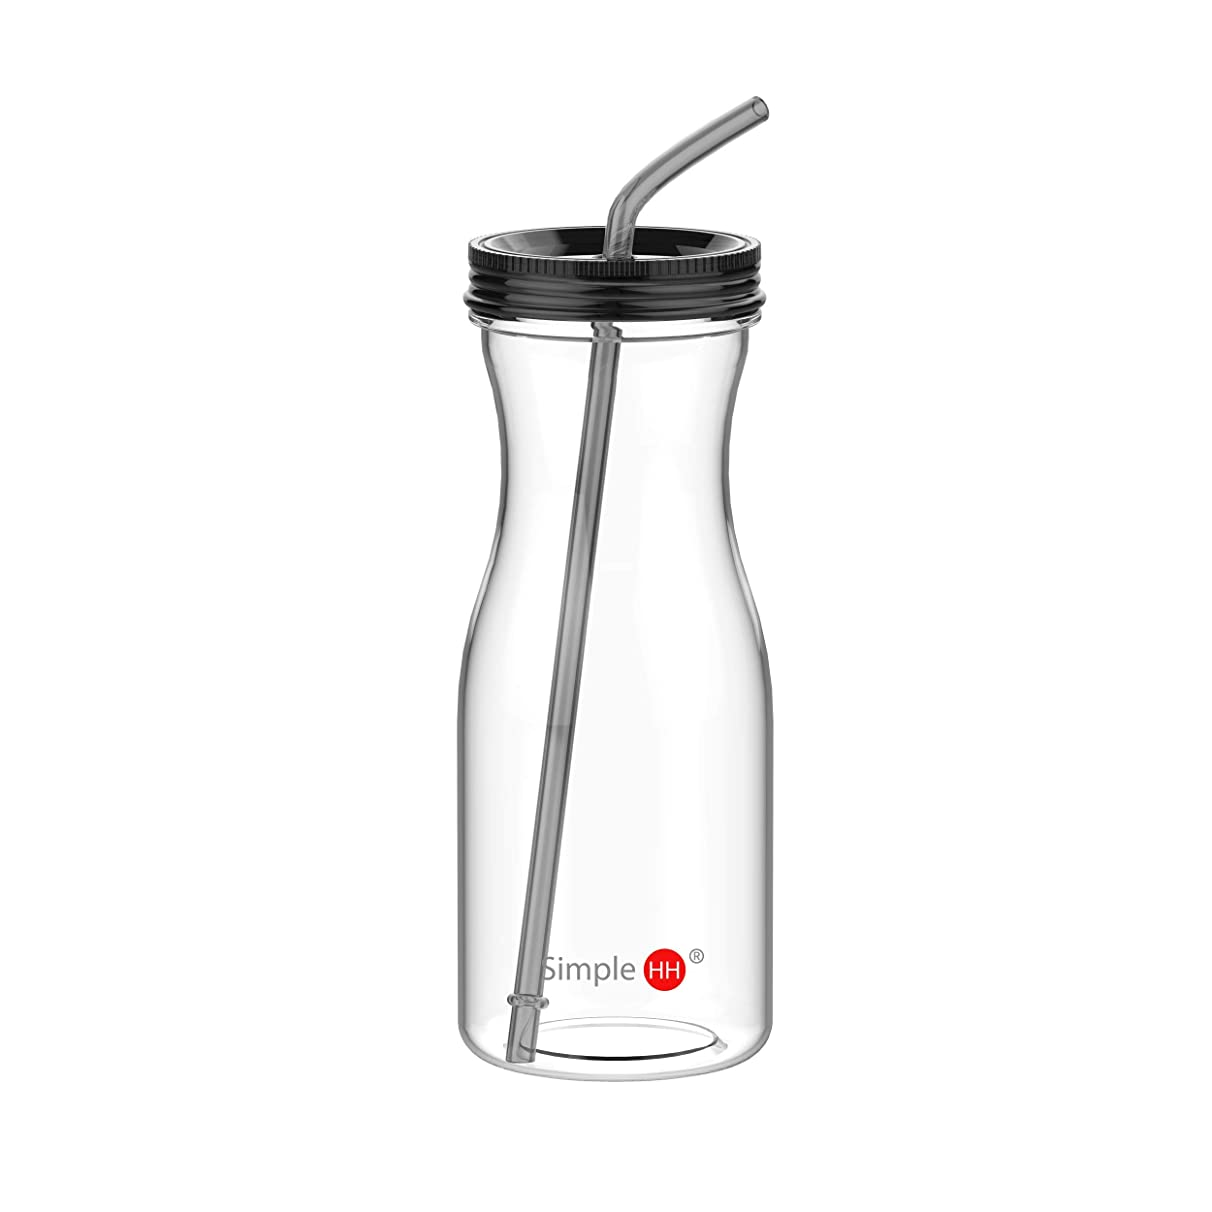 SH Tritan Water Bottle with Straw by SimpleHH: BPA Free Cold Drink/Water Container   33oz Dishwasher-Safe Tumbler   Extra Wide Mouth w/Easy Twist Lid